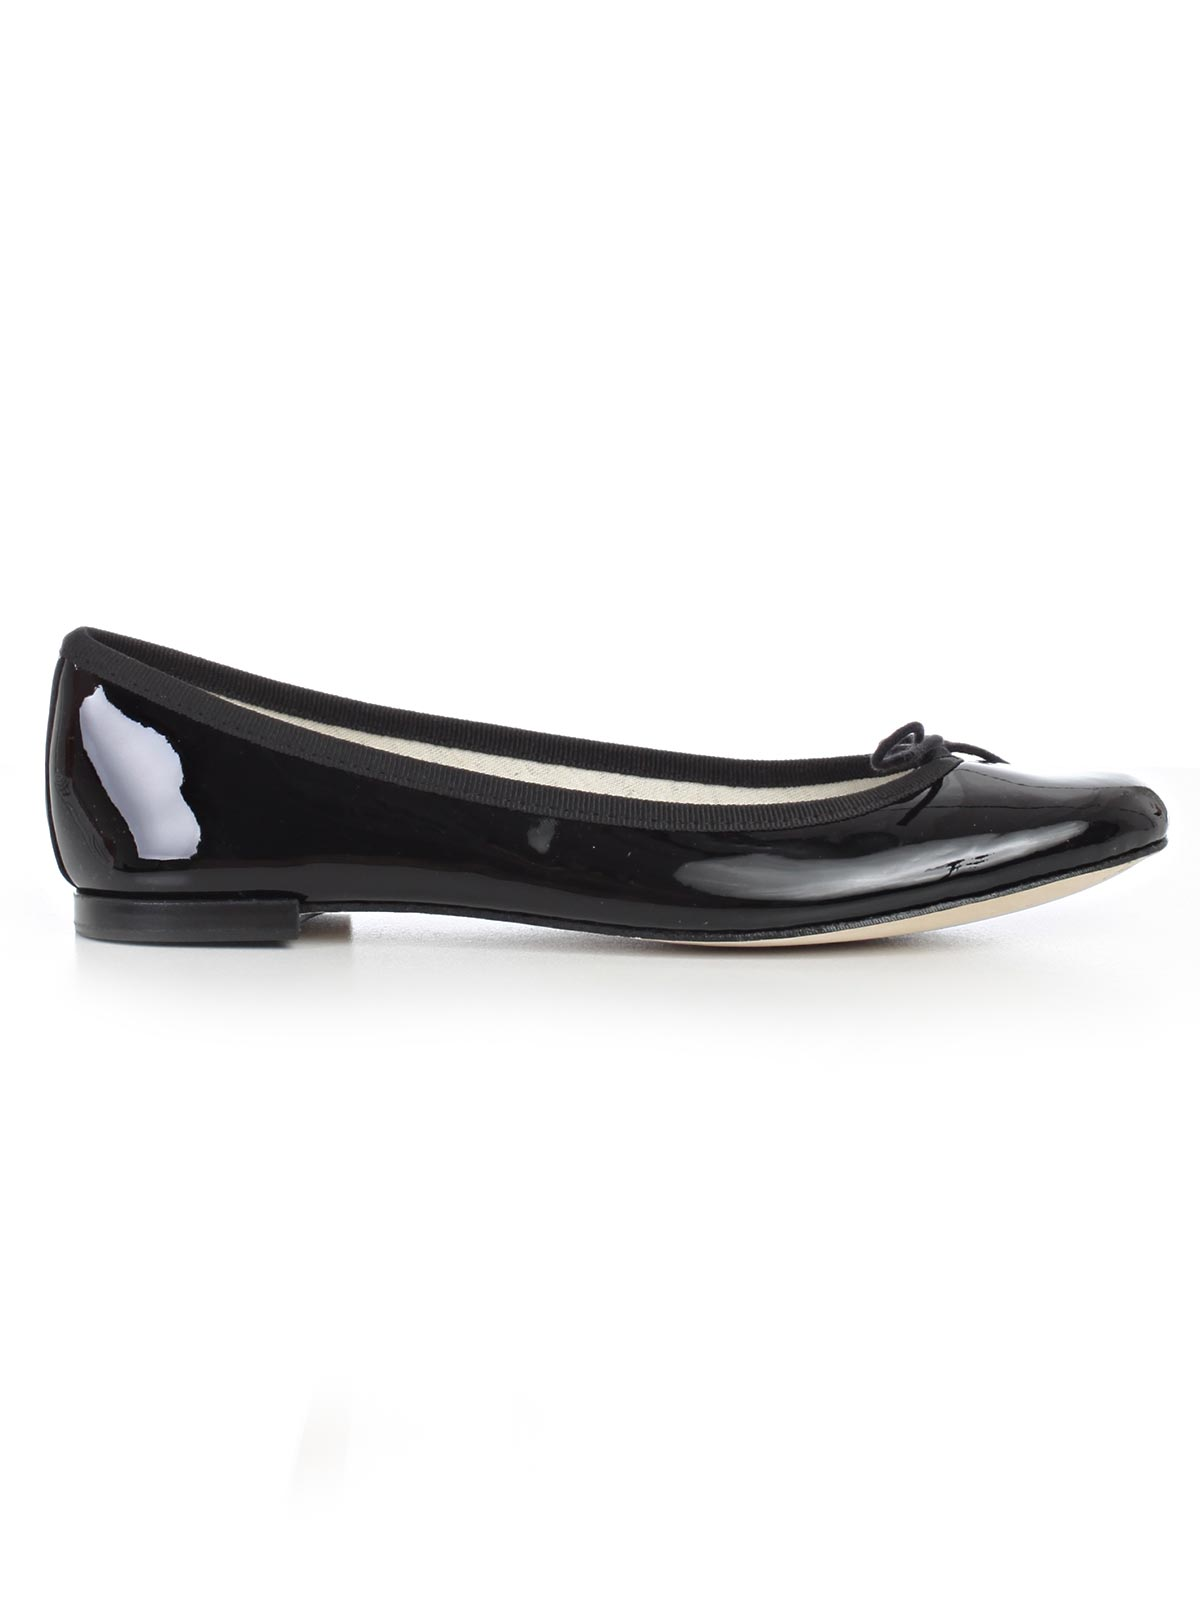 Picture of REPETTO FOOTWEAR CENDRILLON BALLERINA VERNICE